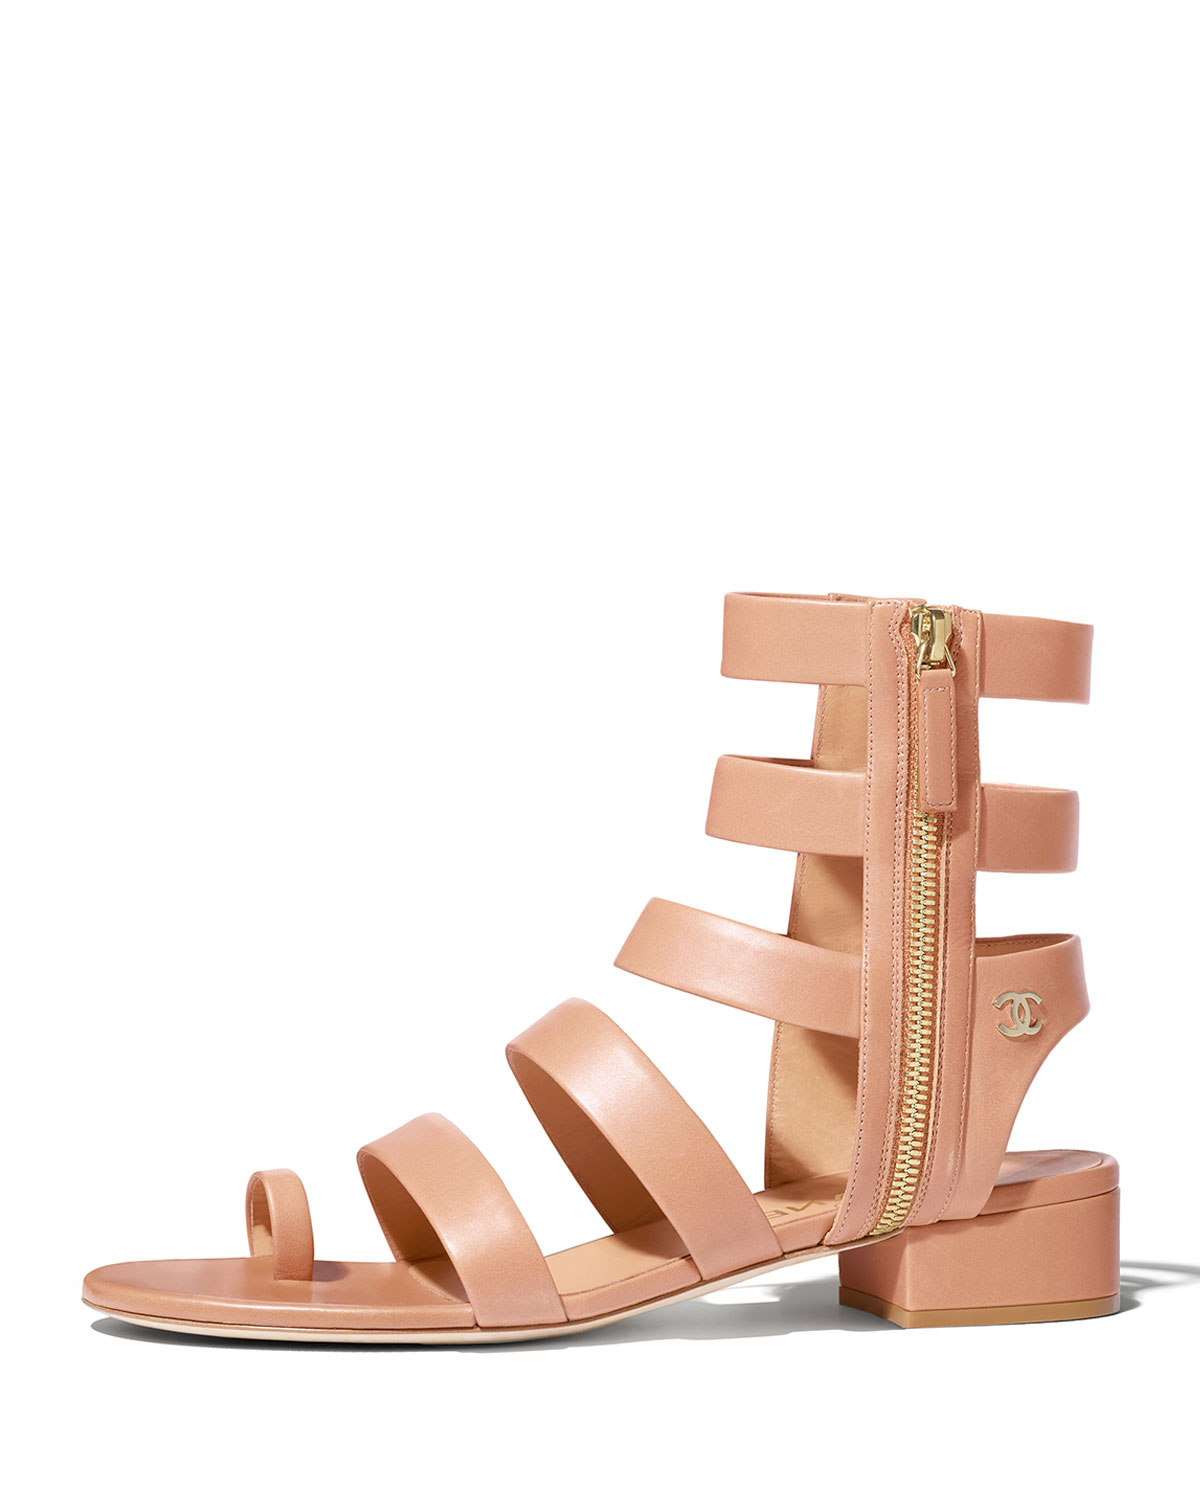 0eb788914ee7 CHANEL SANDALS